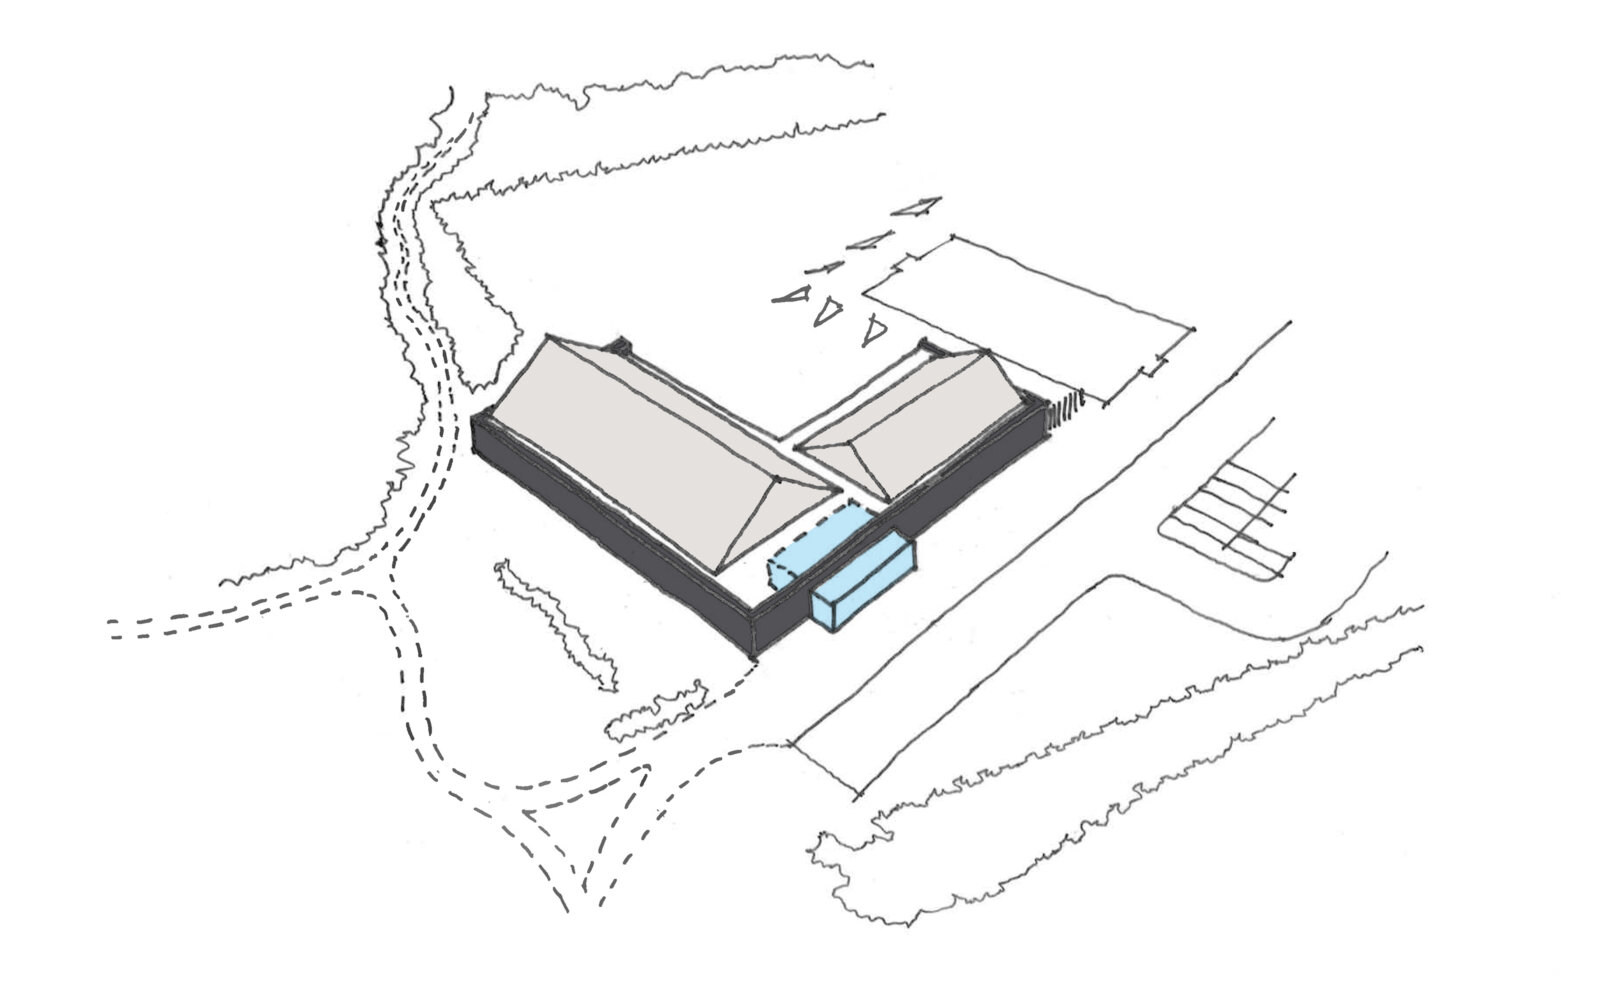 Hallglen Early Years Centre massing diagram